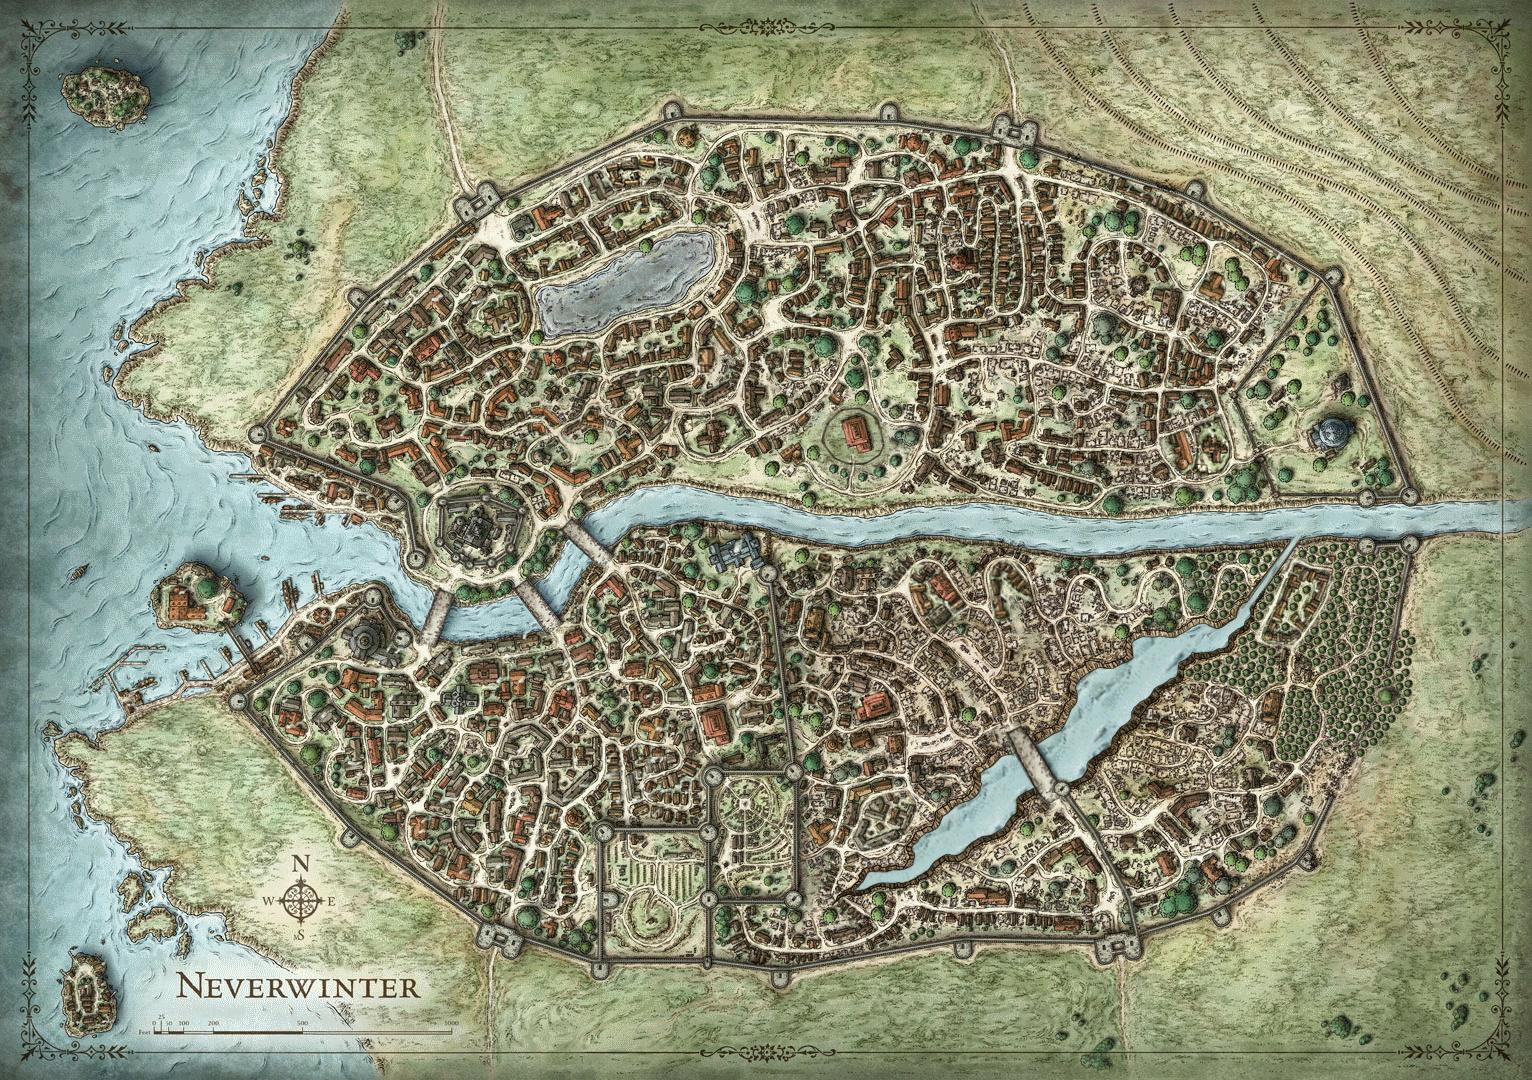 map of the city of Neverwitner